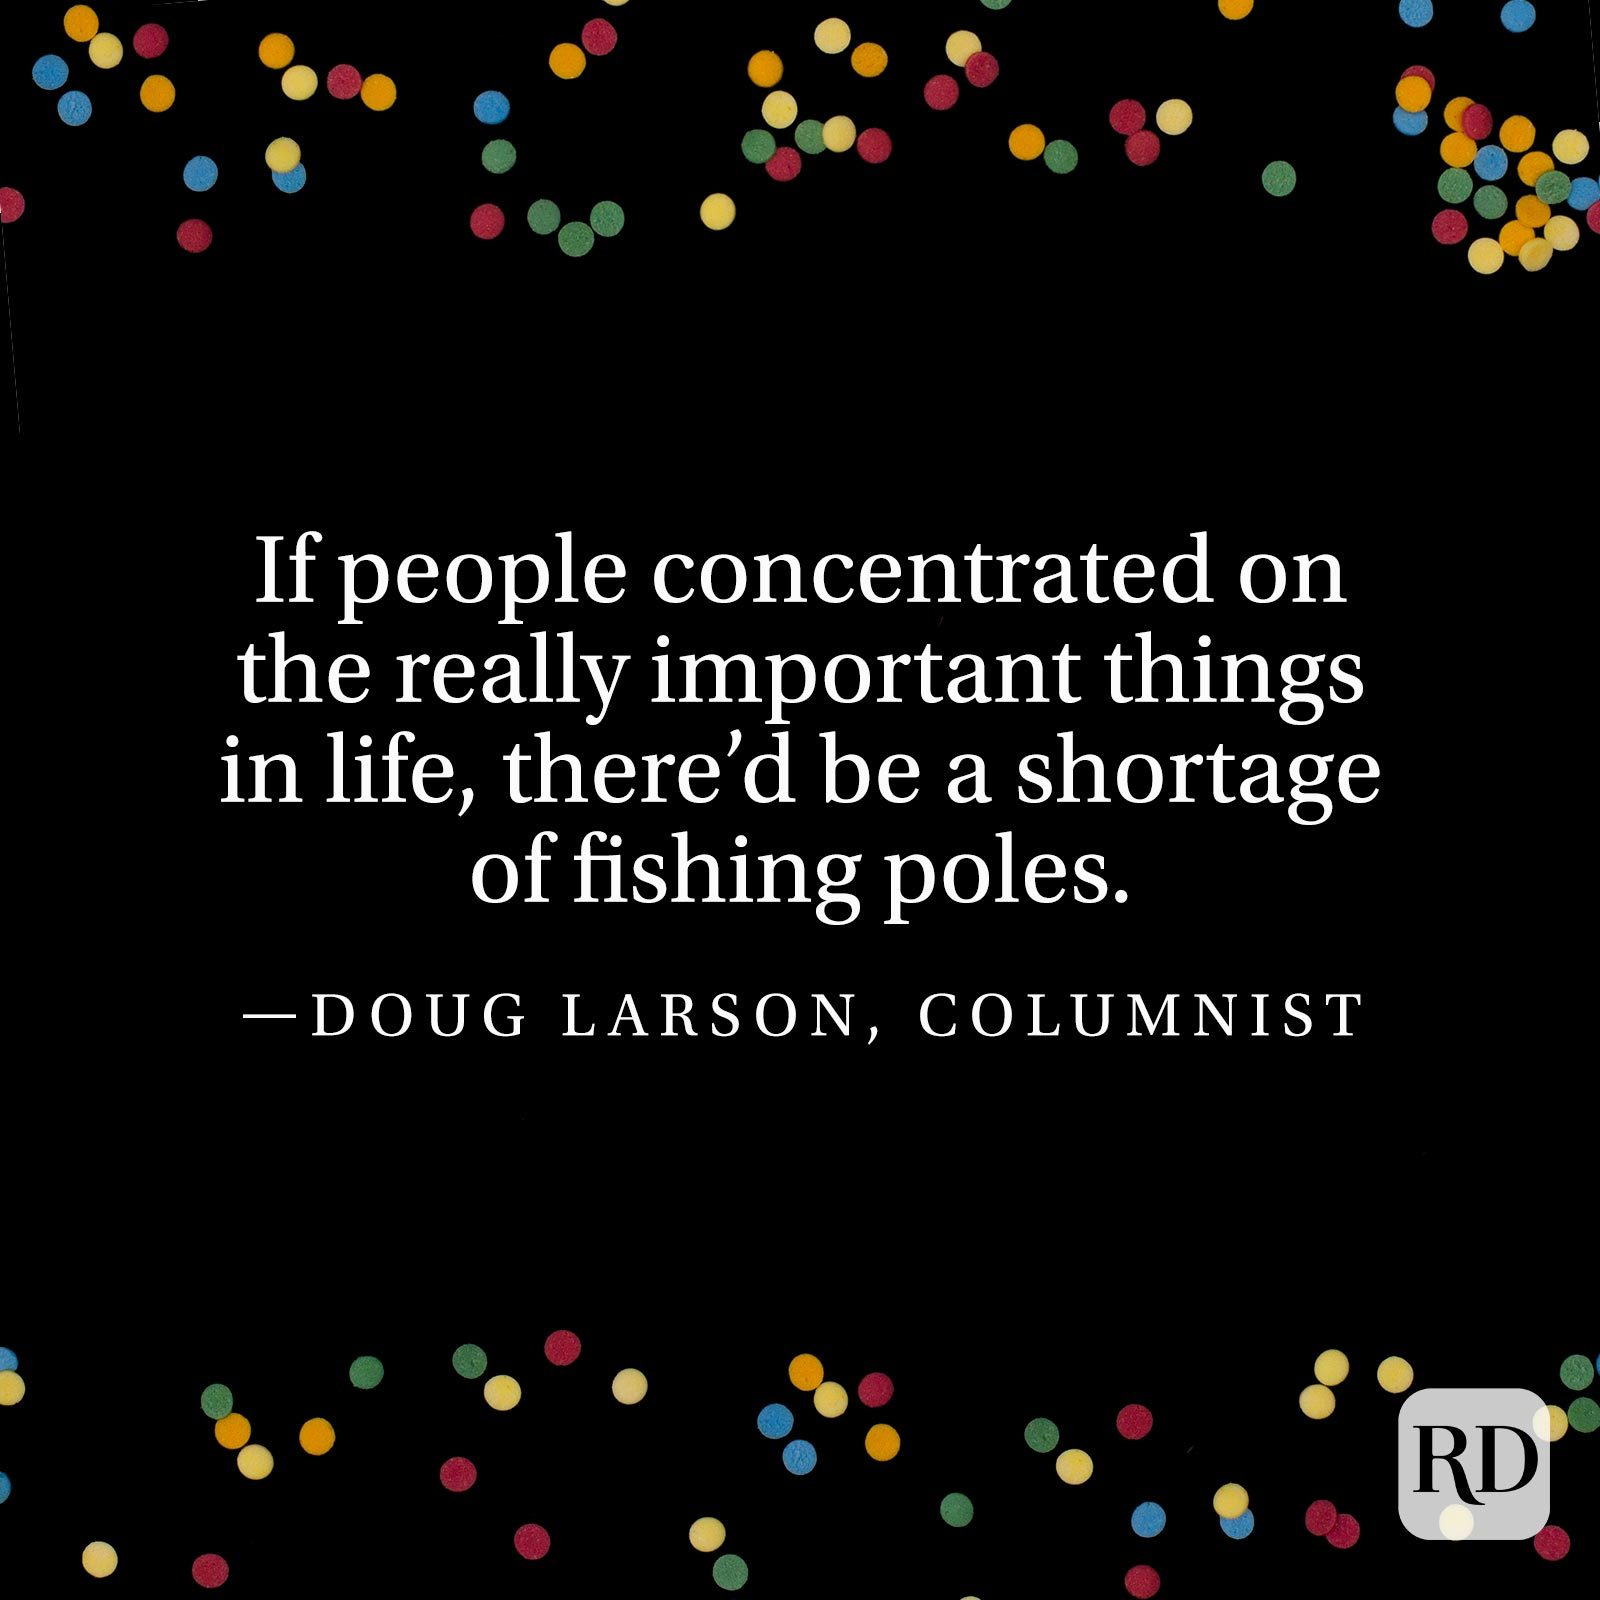 """If people concentrated on the really important things in life, there'd be a shortage of fishing poles."" —Doug Larson, columnist"